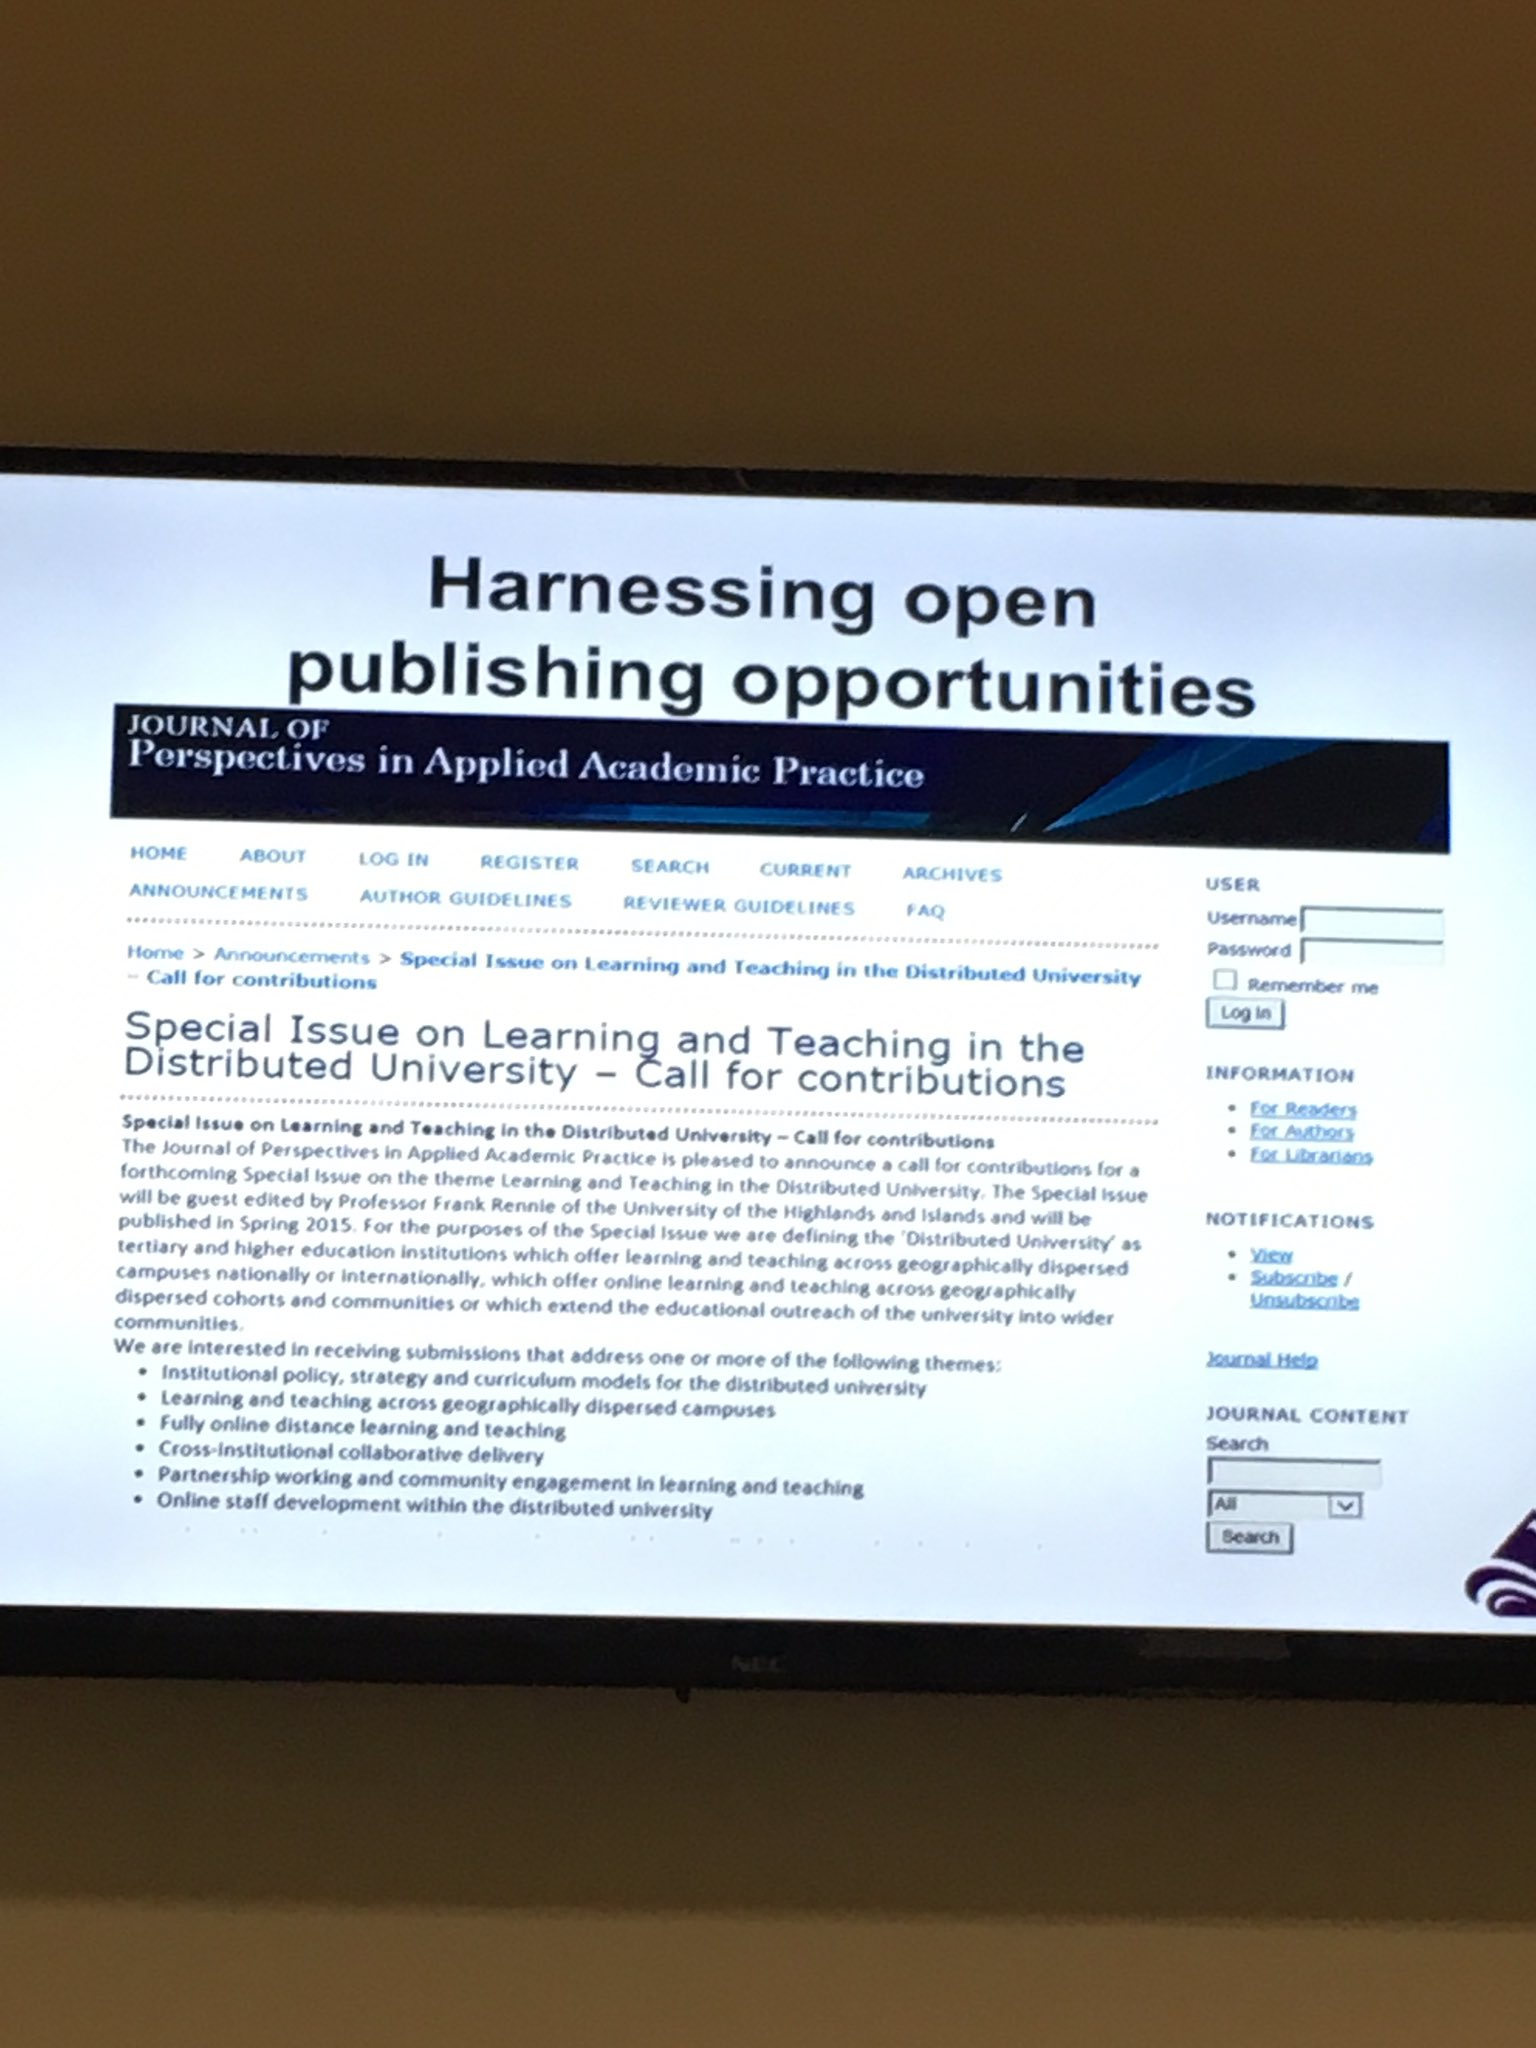 Keith Smyth points to @JofPAAP as an example of a vehicle through which to harness potential of open publishing #ELESIG https://t.co/421VErFRTI